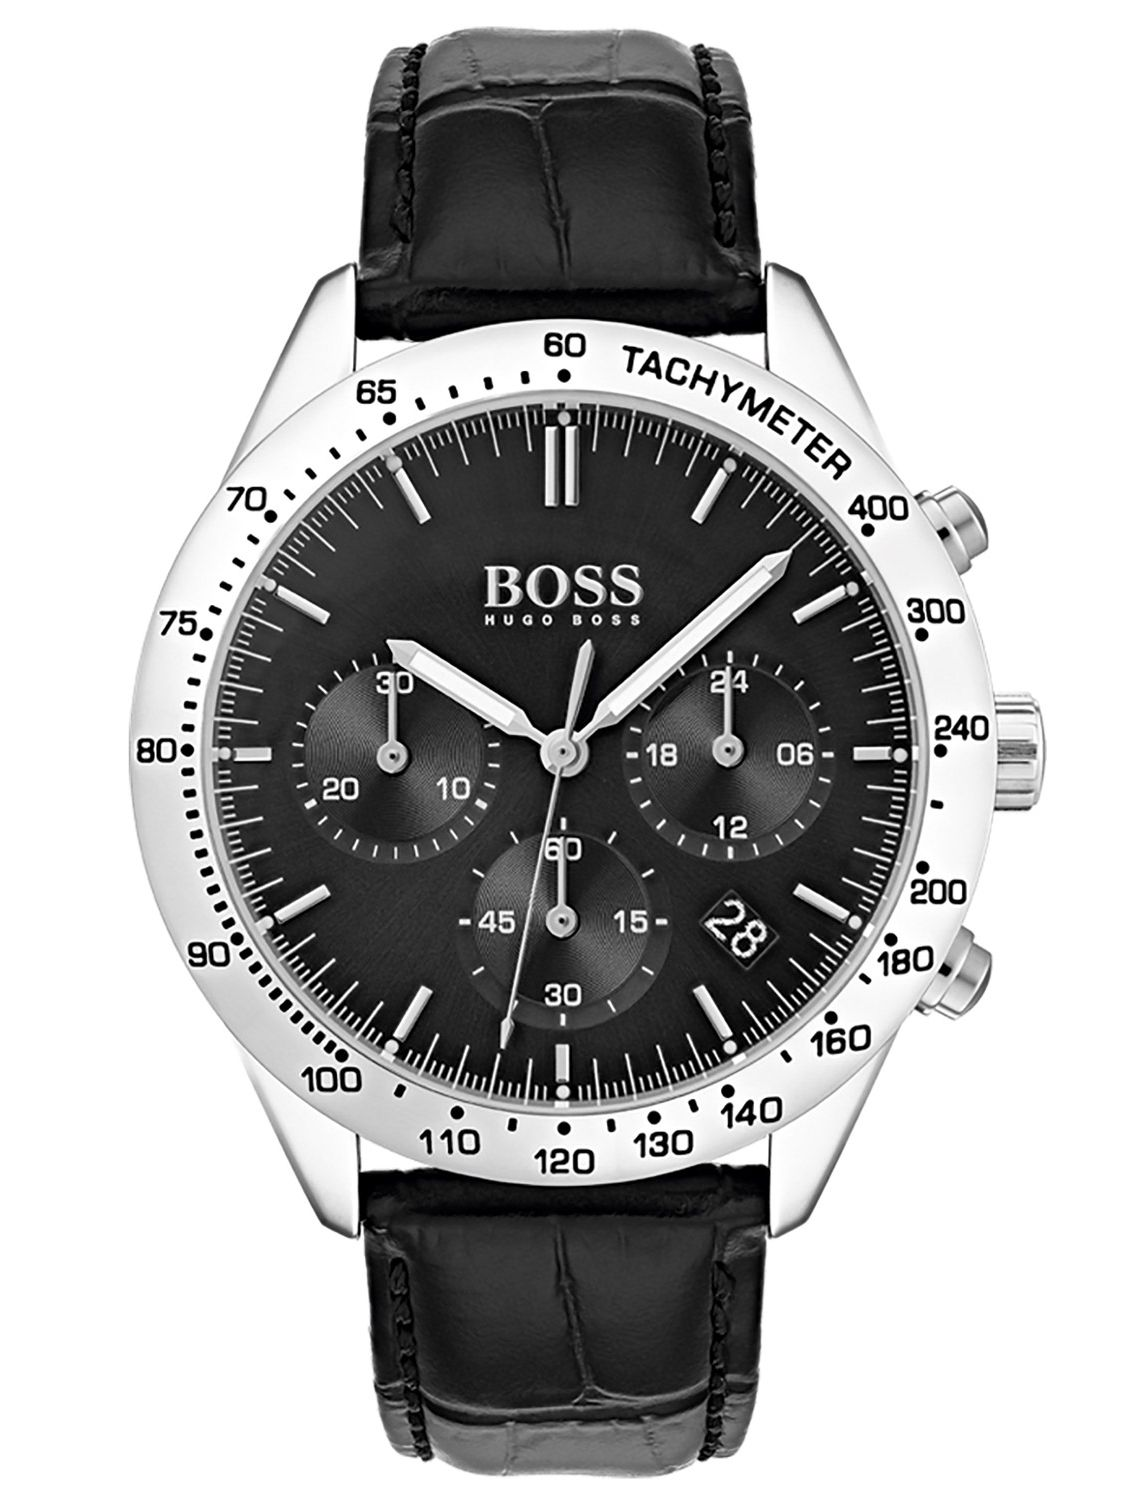 18128ae55 Boss 1513579 Mens Watch Chronograph Talent Image 1 ...